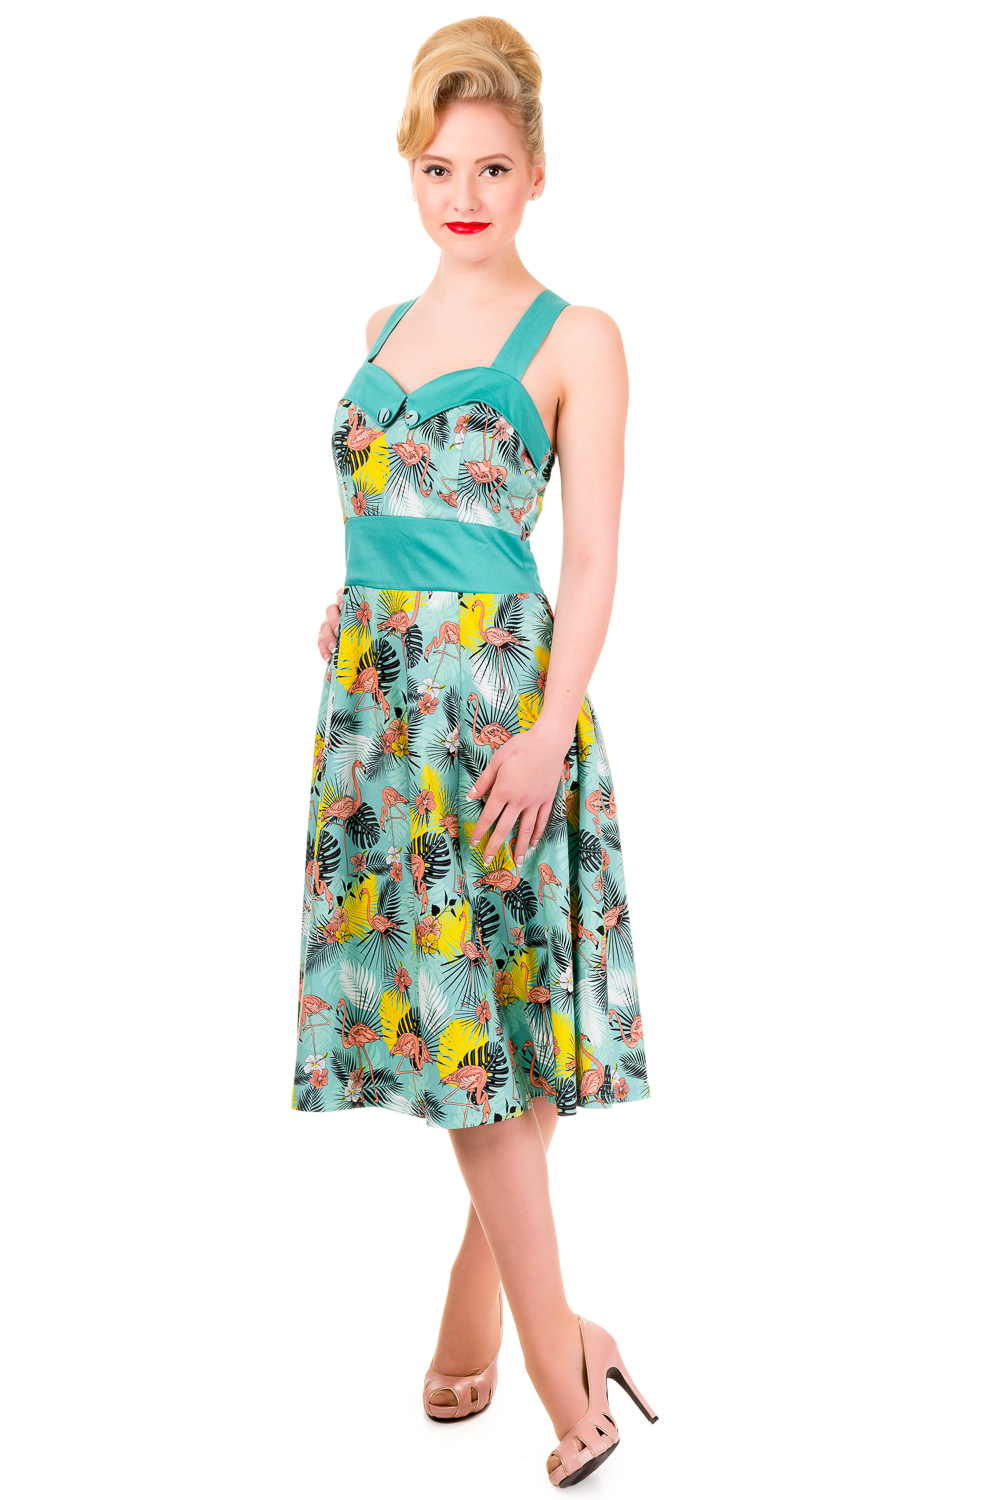 Banned Wanderlust Tropical Flamingo Rockabilly Prom Dress